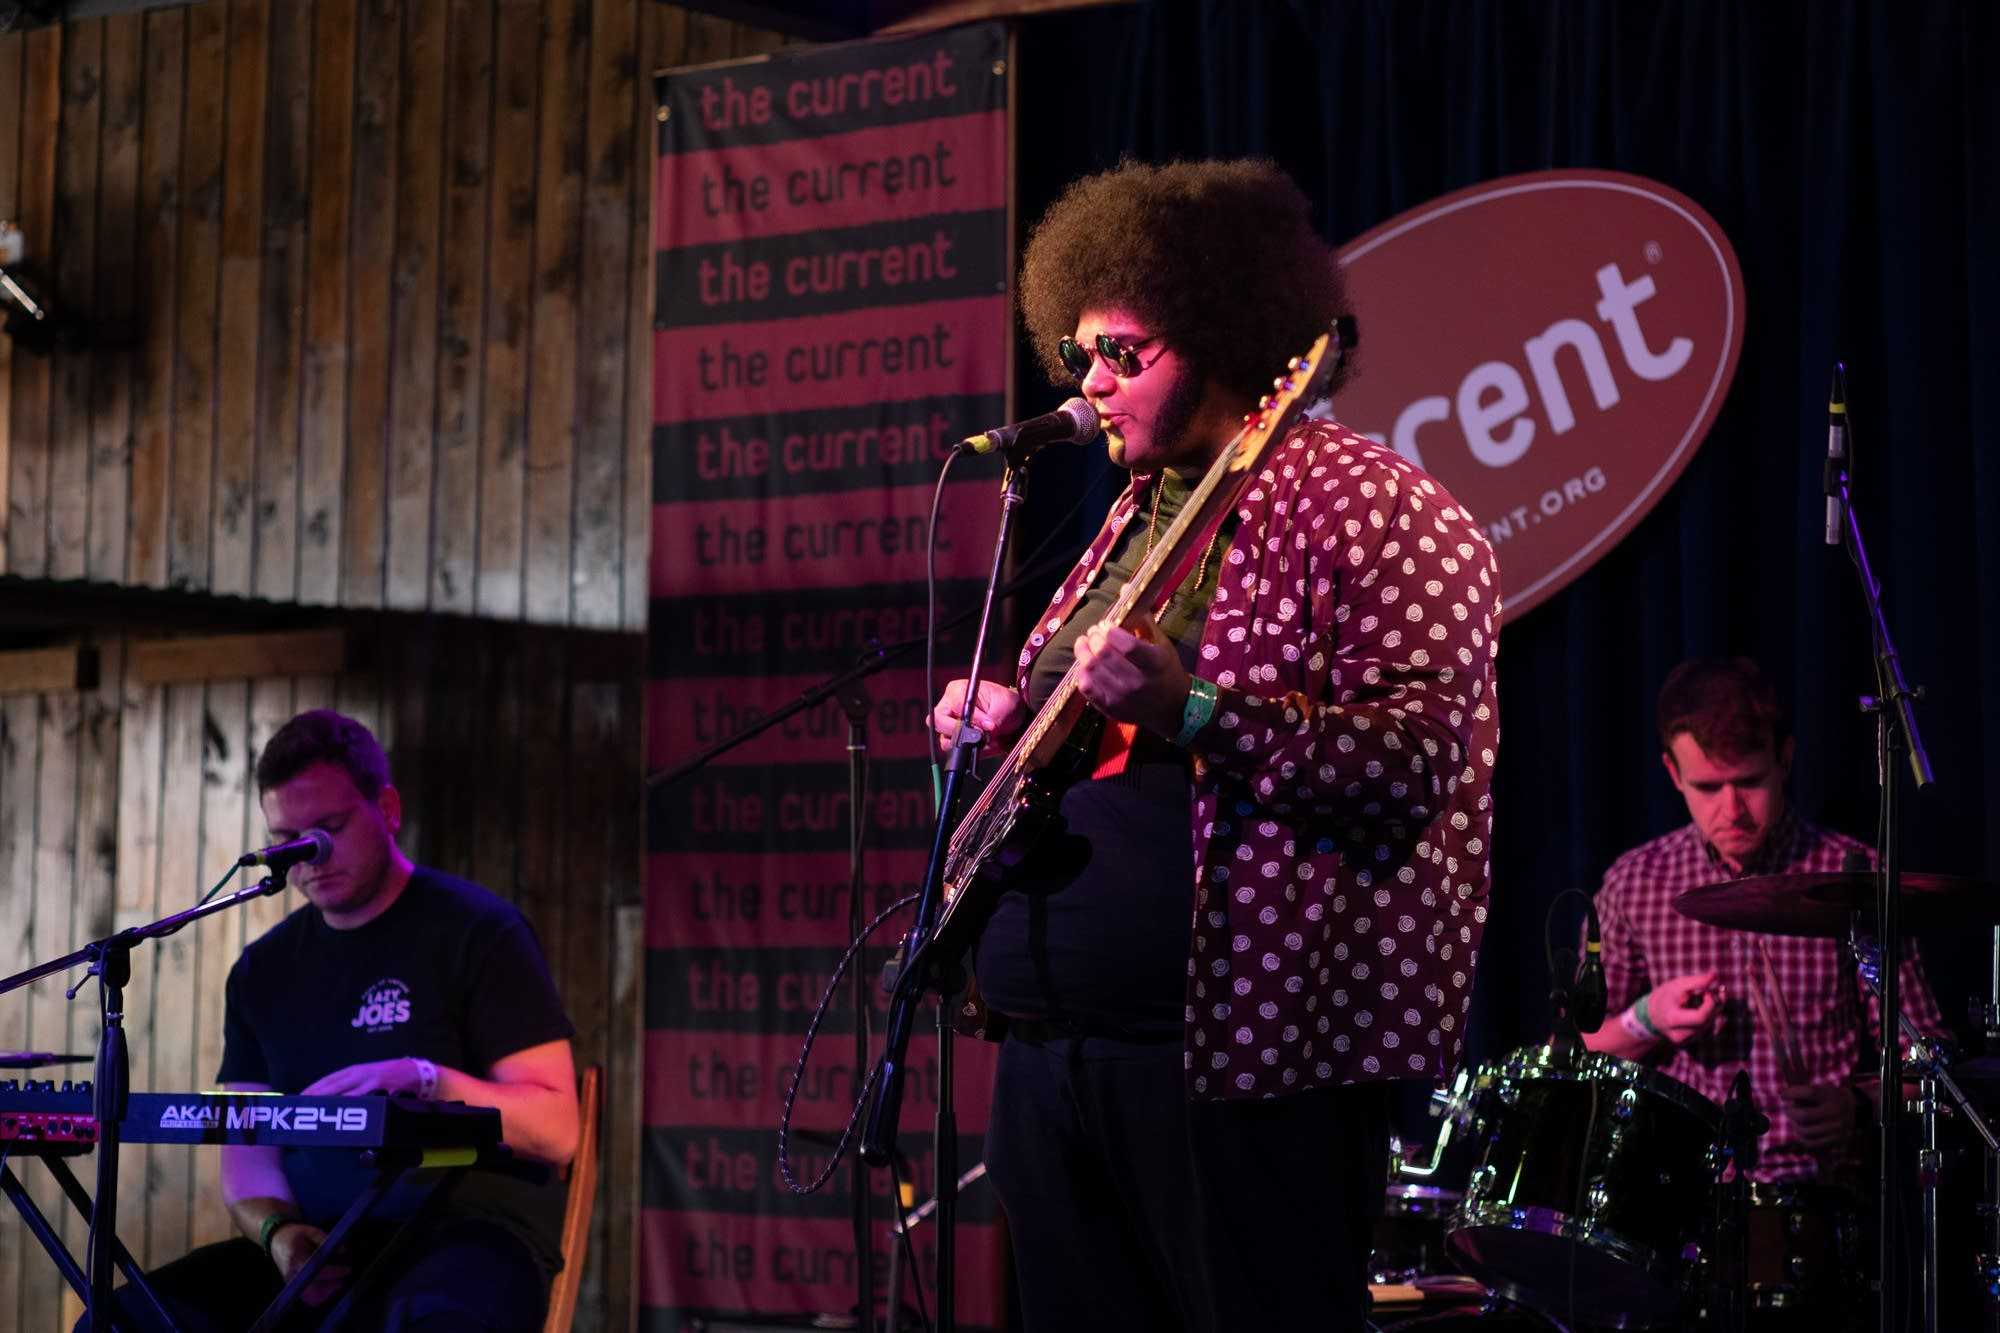 Dylan Cartlidge performs at The Current Day Party during SXSW 2019